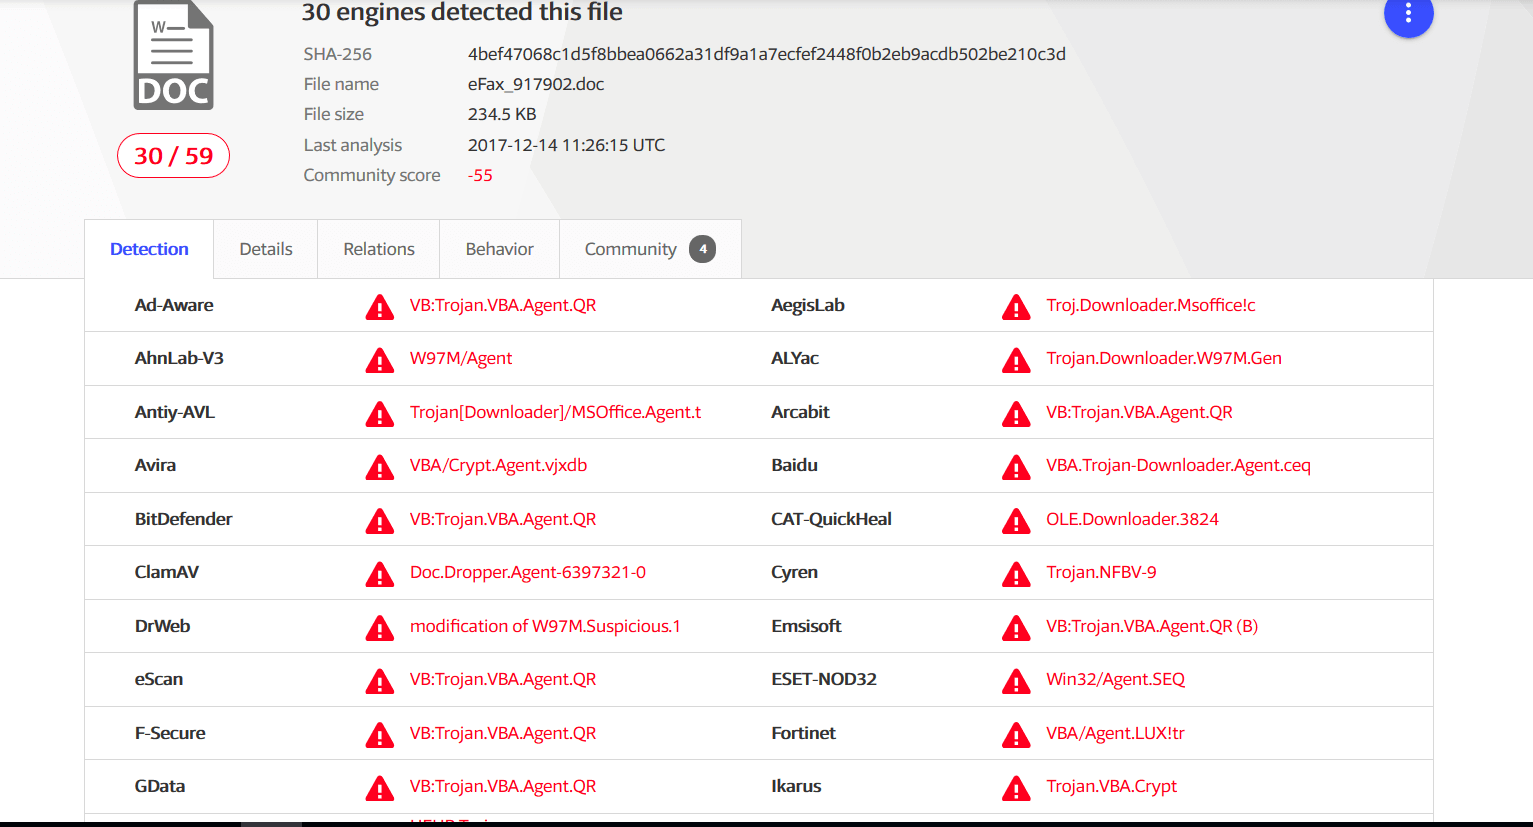 Security Alert: New Wave of Malicious Exploit Kits Are